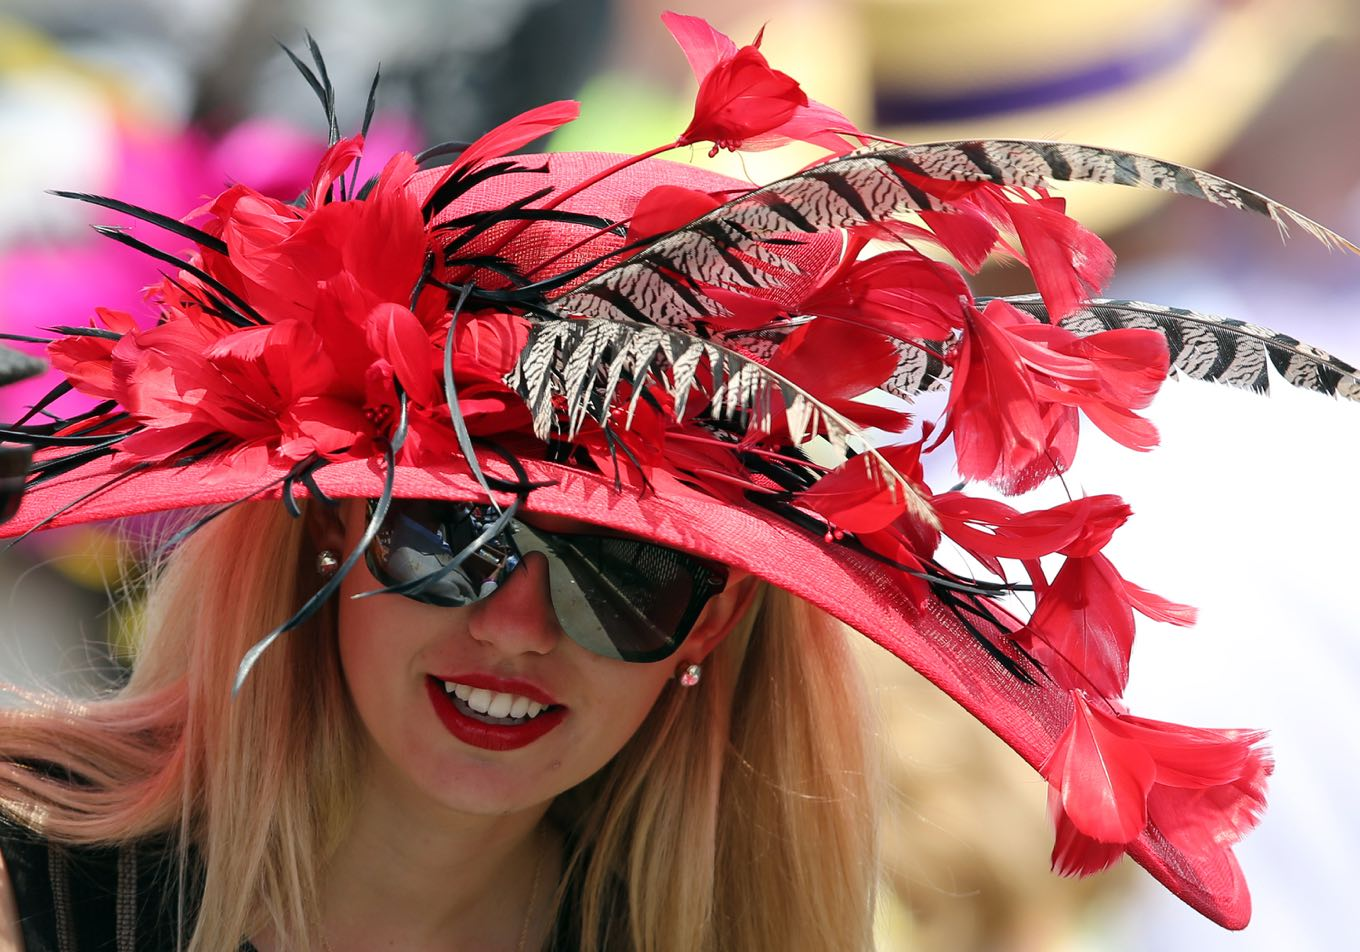 1f4db3cd612 10 Amazing Kentucky Derby Hats The Original Mane N Tail. What To Wear The Kentucky  Derby 33 Head Toe Fashion Ticketmaster. What To Wear The Kentucky Derby ...